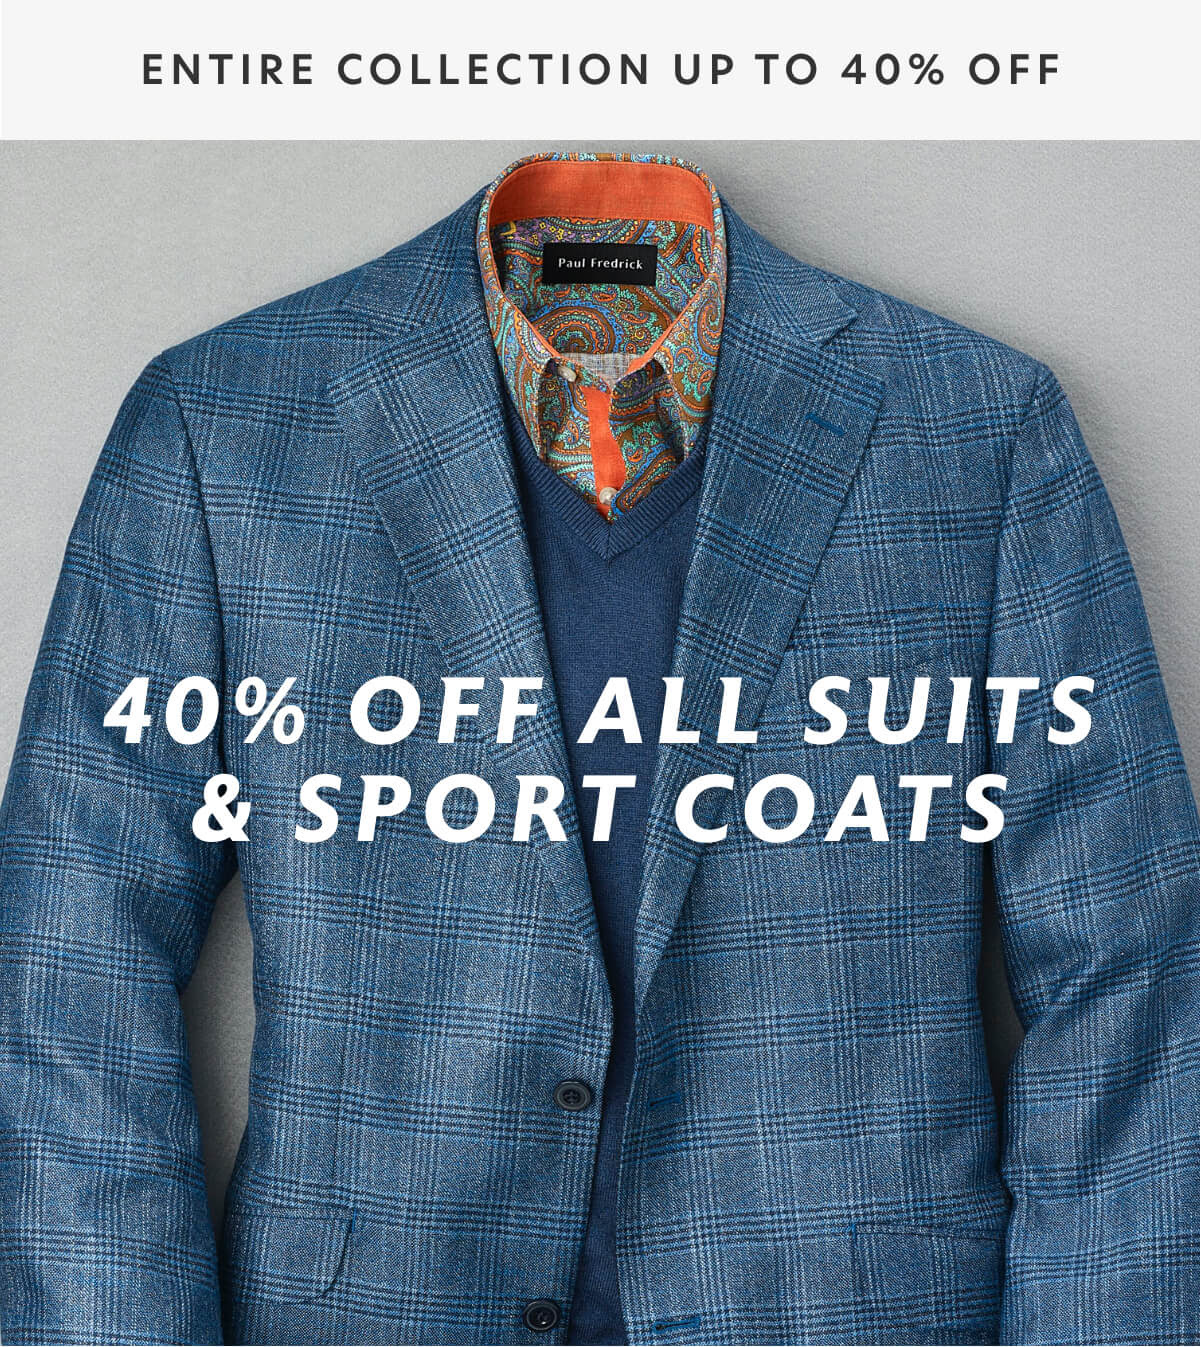 Paul Fredrick: Take 40% off all sports coats & suits